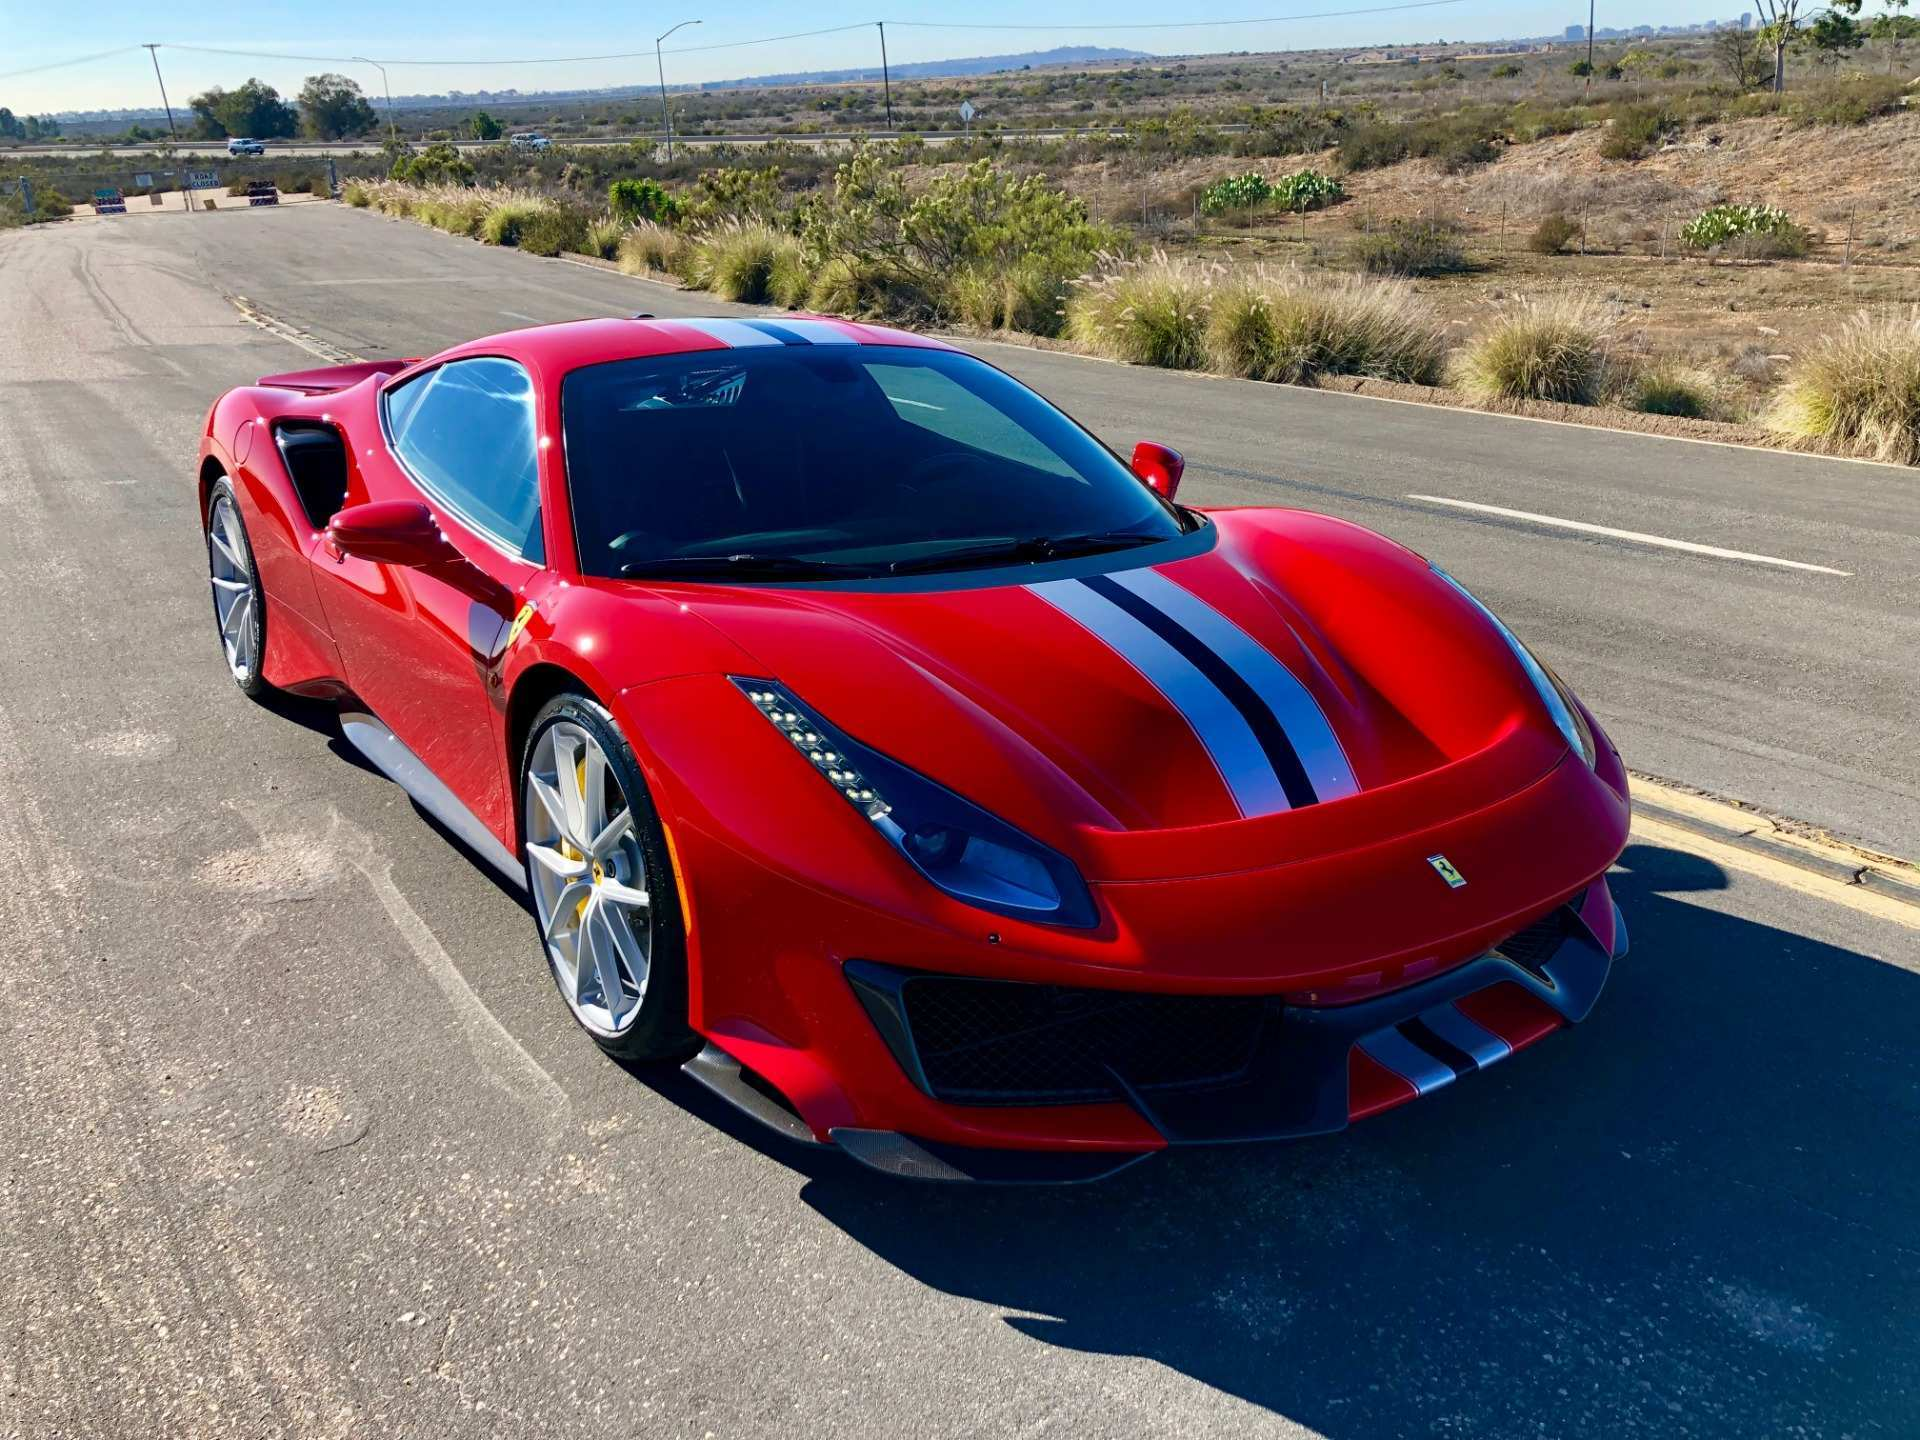 93 Gallery of 2019 Ferrari 488 Pista For Sale Concept by 2019 Ferrari 488 Pista For Sale